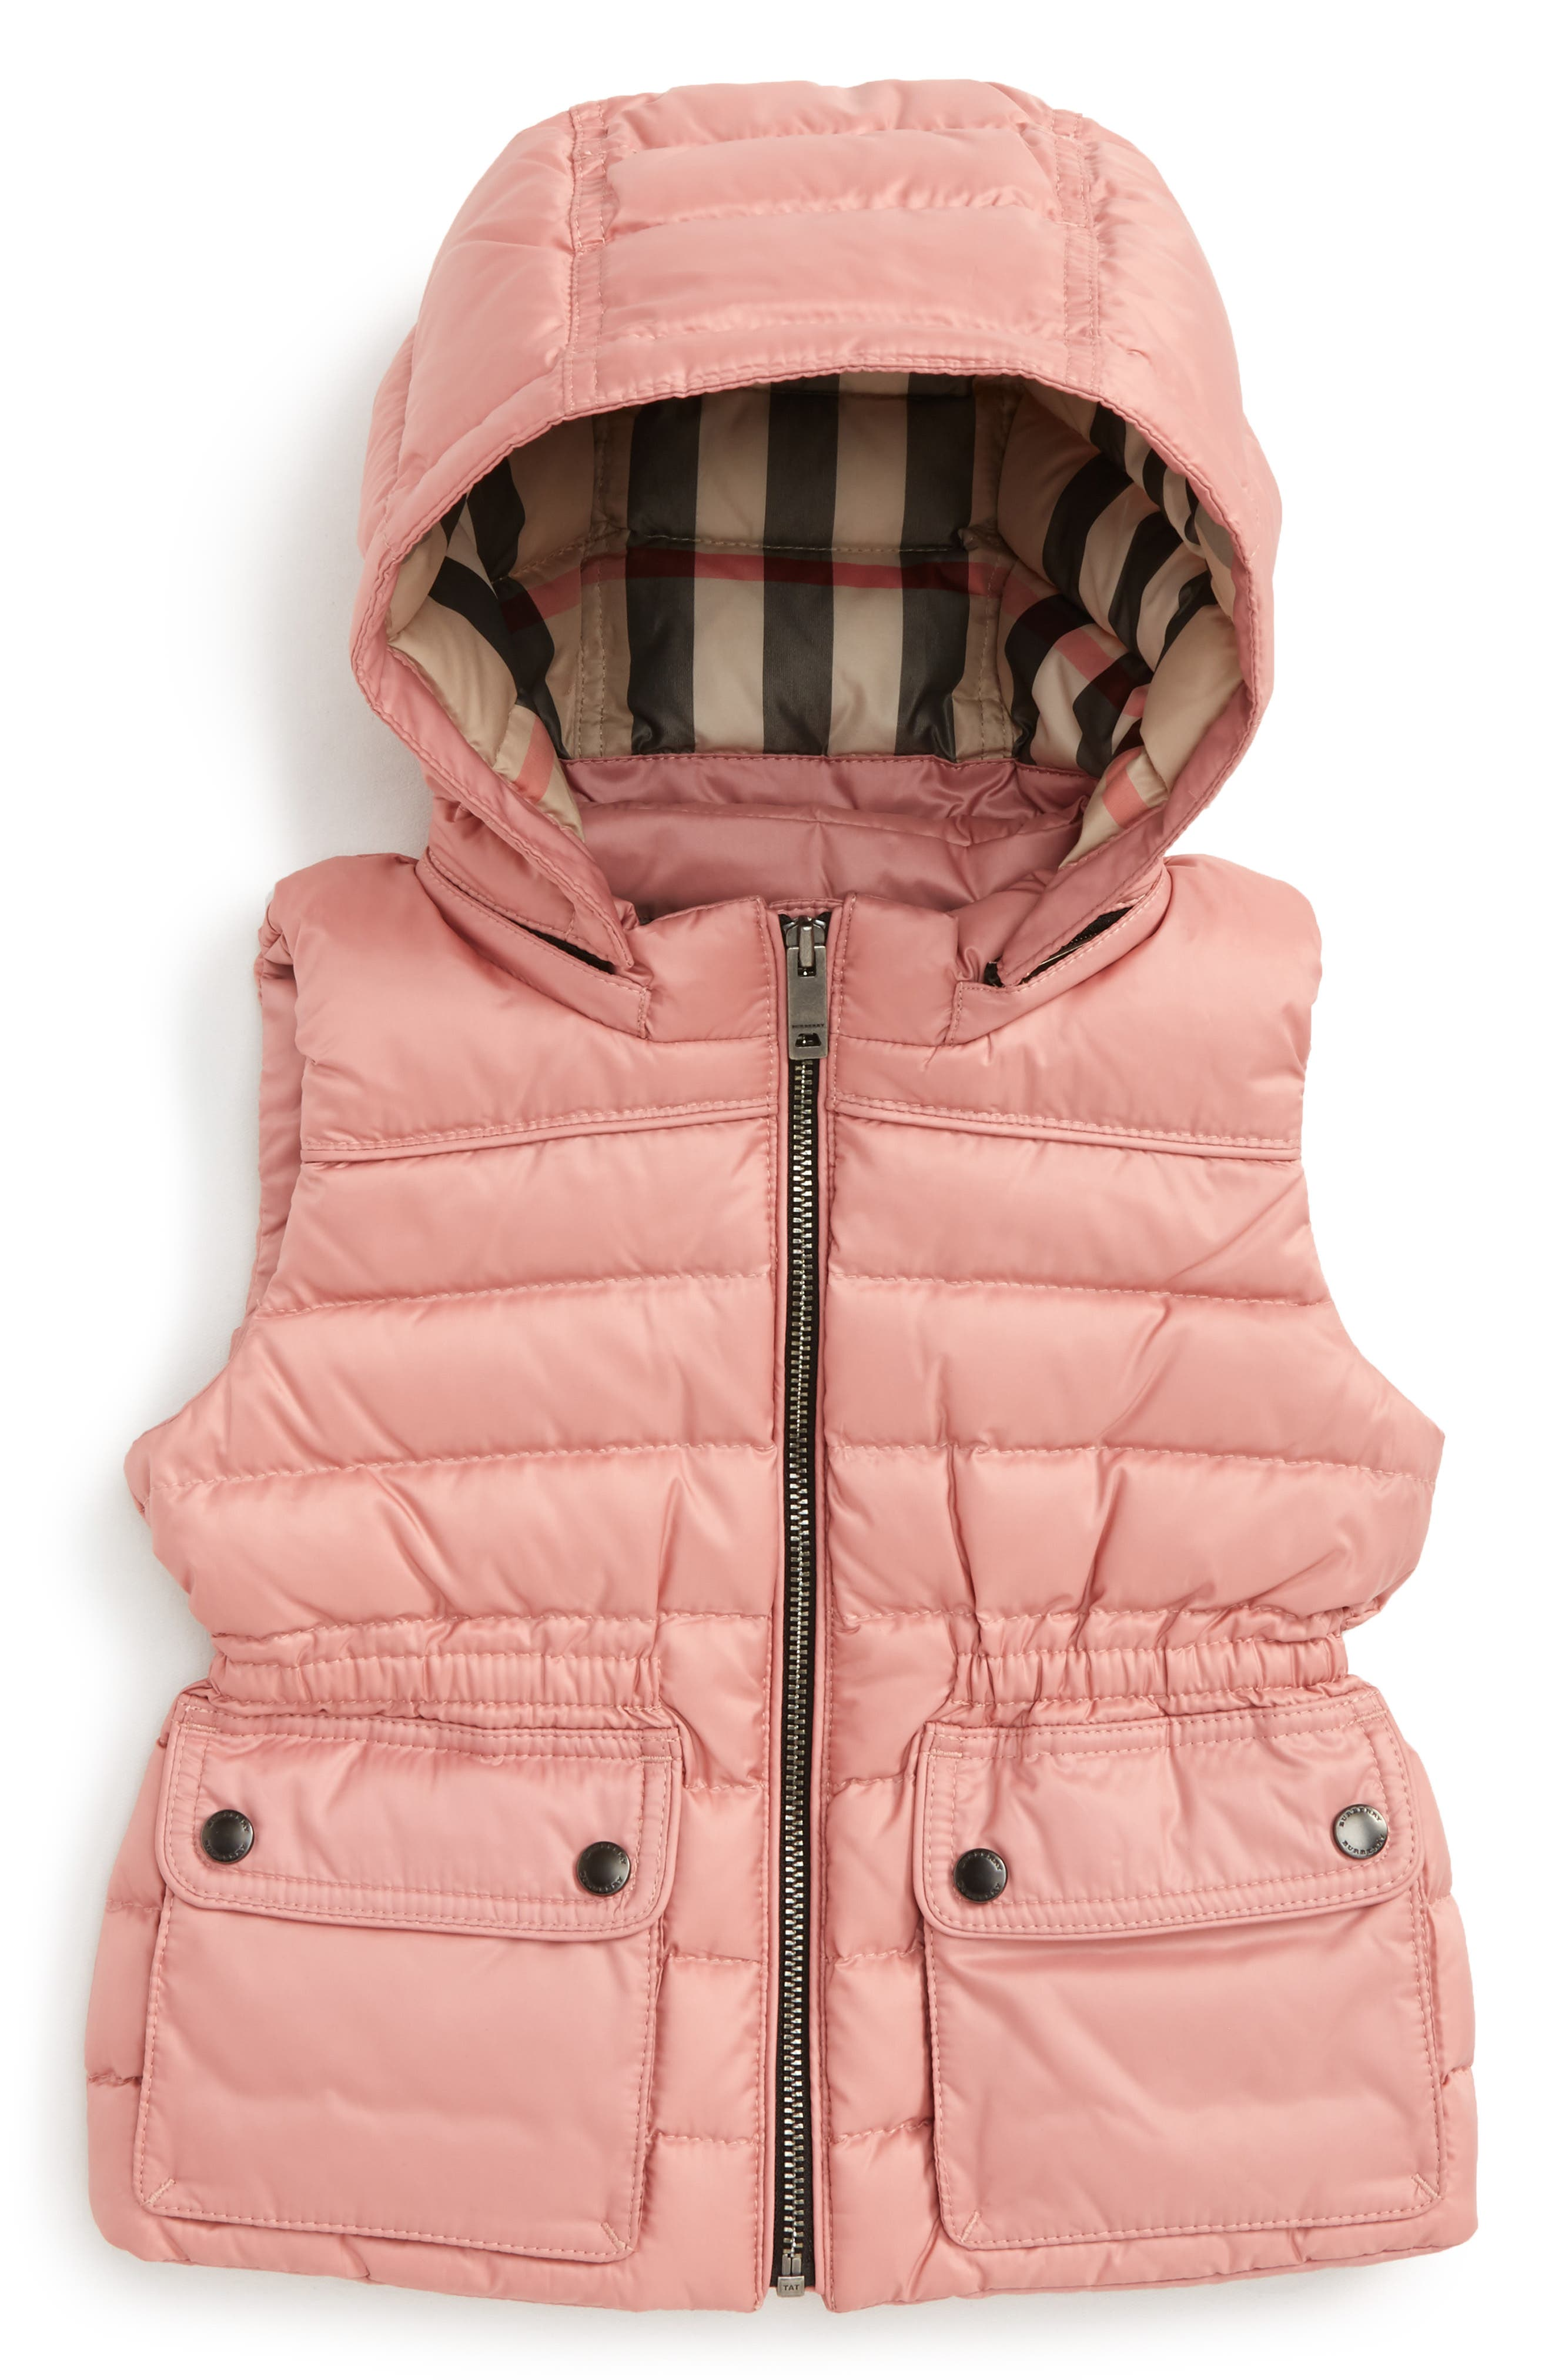 Burberry Hooded Down Vest (Baby Girls)